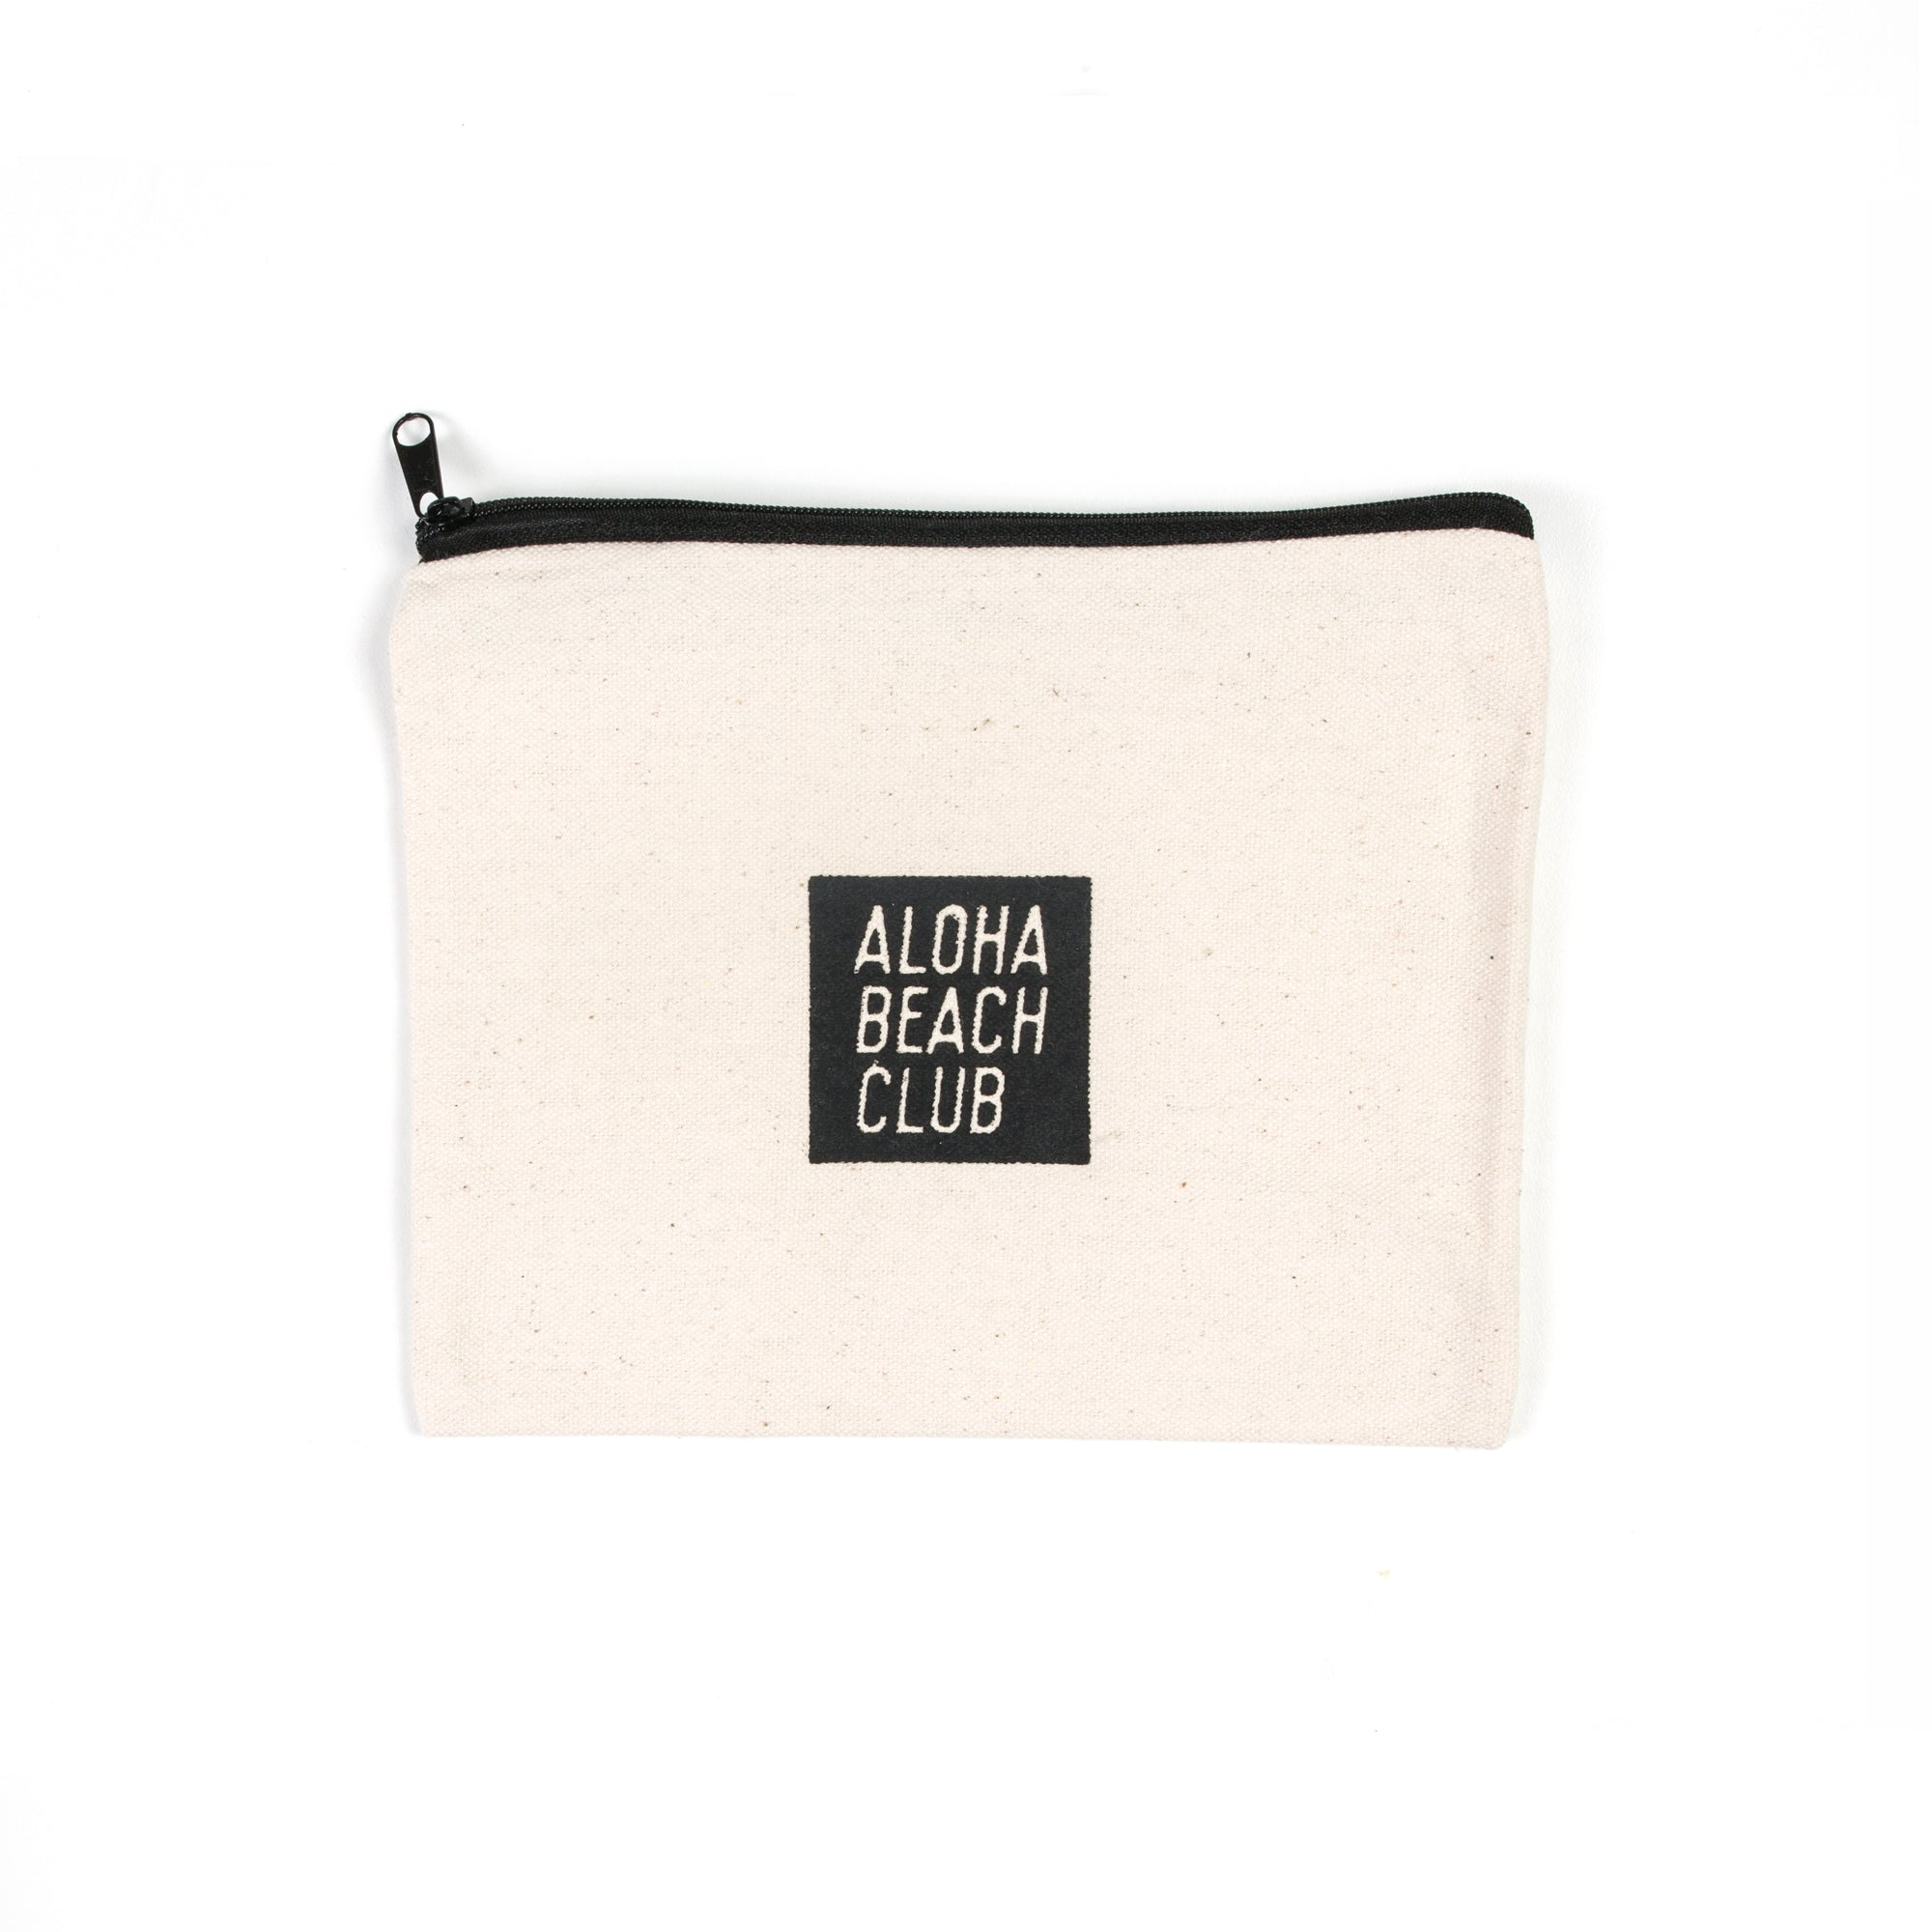 Aloha Beach Club - Cotton Canvas Dopp Kit Natural - Aloha Beach Club